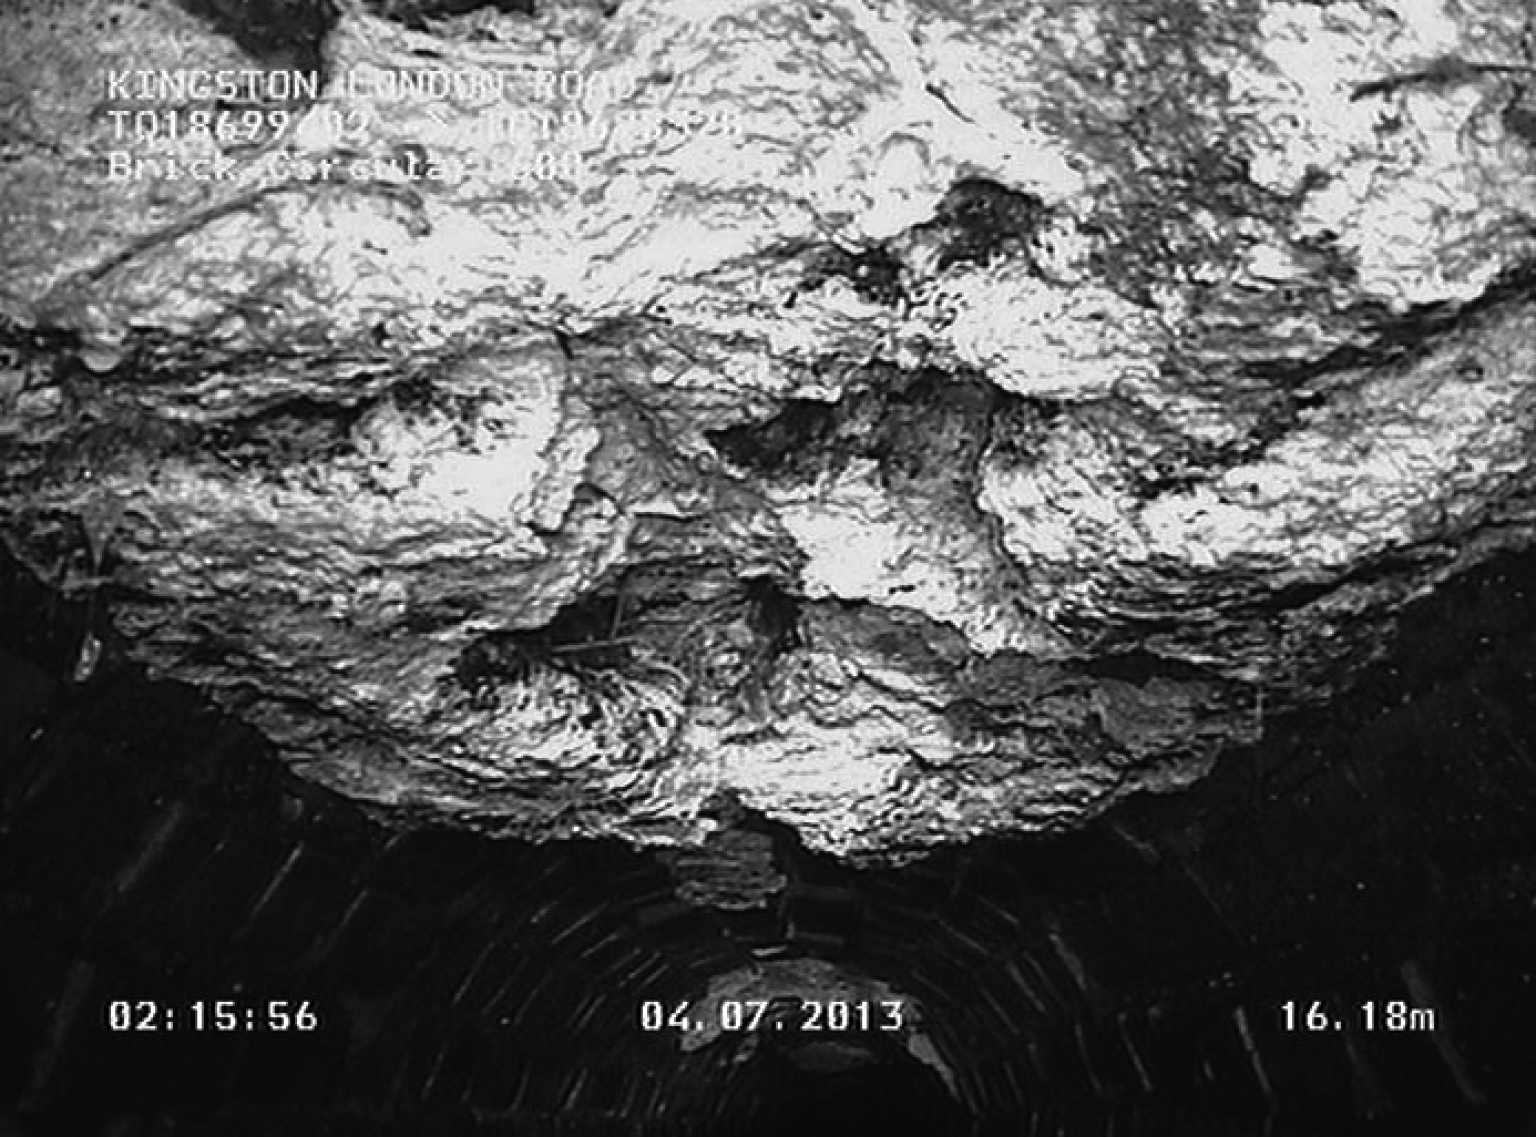 B+W-FATBERG-KINGSTON-COUNTY-CLEAN-facebook